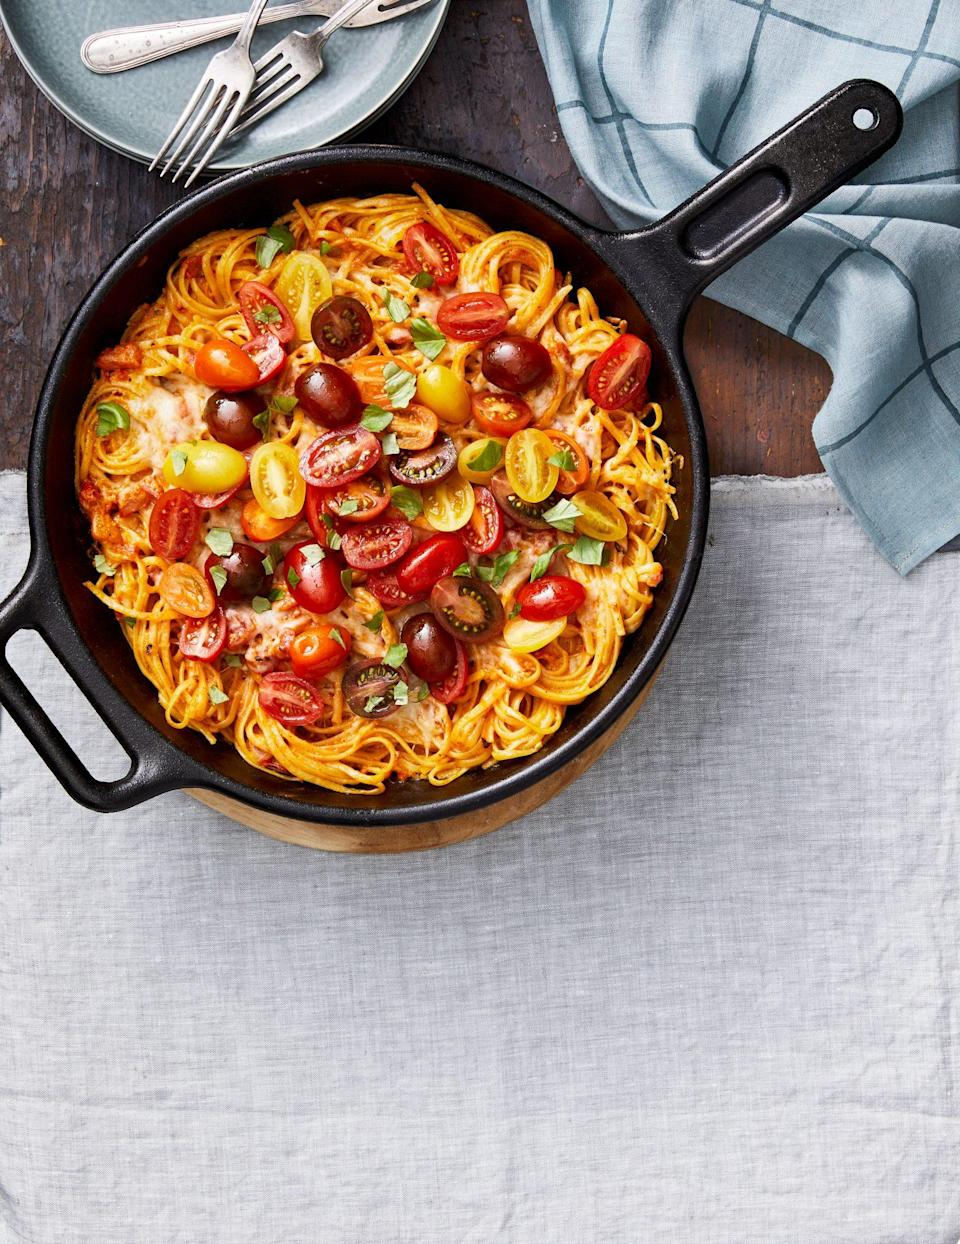 "<p><strong>Recipe: </strong><a href=""https://www.southernliving.com/pasta/baked-linguine-with-spicy-tomato-cream-sauce"" rel=""nofollow noopener"" target=""_blank"" data-ylk=""slk:Baked Linguine with Spicy Tomato-Cream Sauce"" class=""link rapid-noclick-resp""><strong>Baked Linguine with Spicy Tomato-Cream Sauce</strong></a></p> <p>Pasta night just got so much more delicious. This recipe uses fresh refrigerated linguine instead of dried pasta to save you time. Plus, it finishes with a quick broil in the oven to achieve delicious texture.</p>"